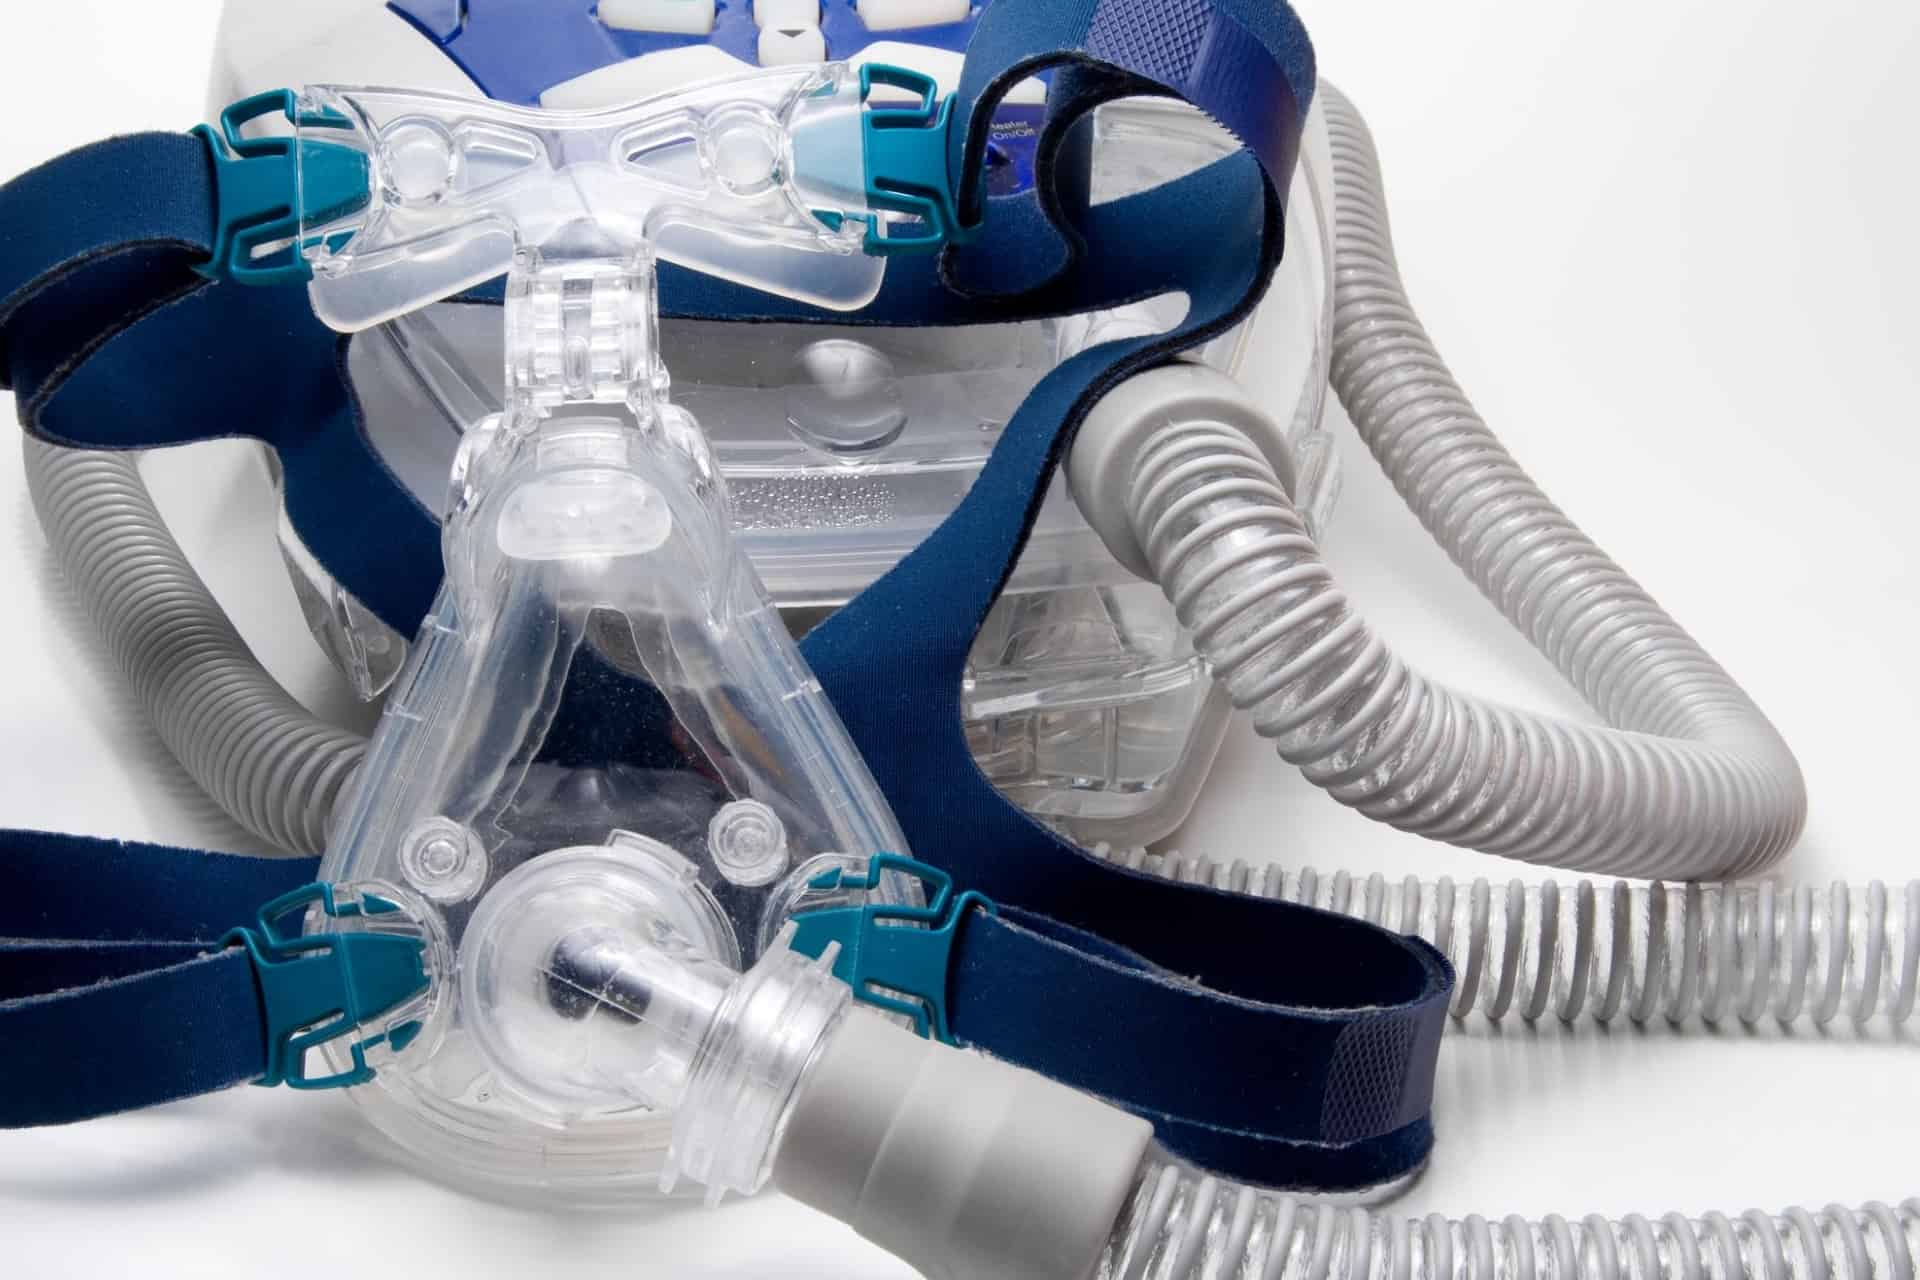 CPAP Masks: Why You Need To Buy Them Carefully